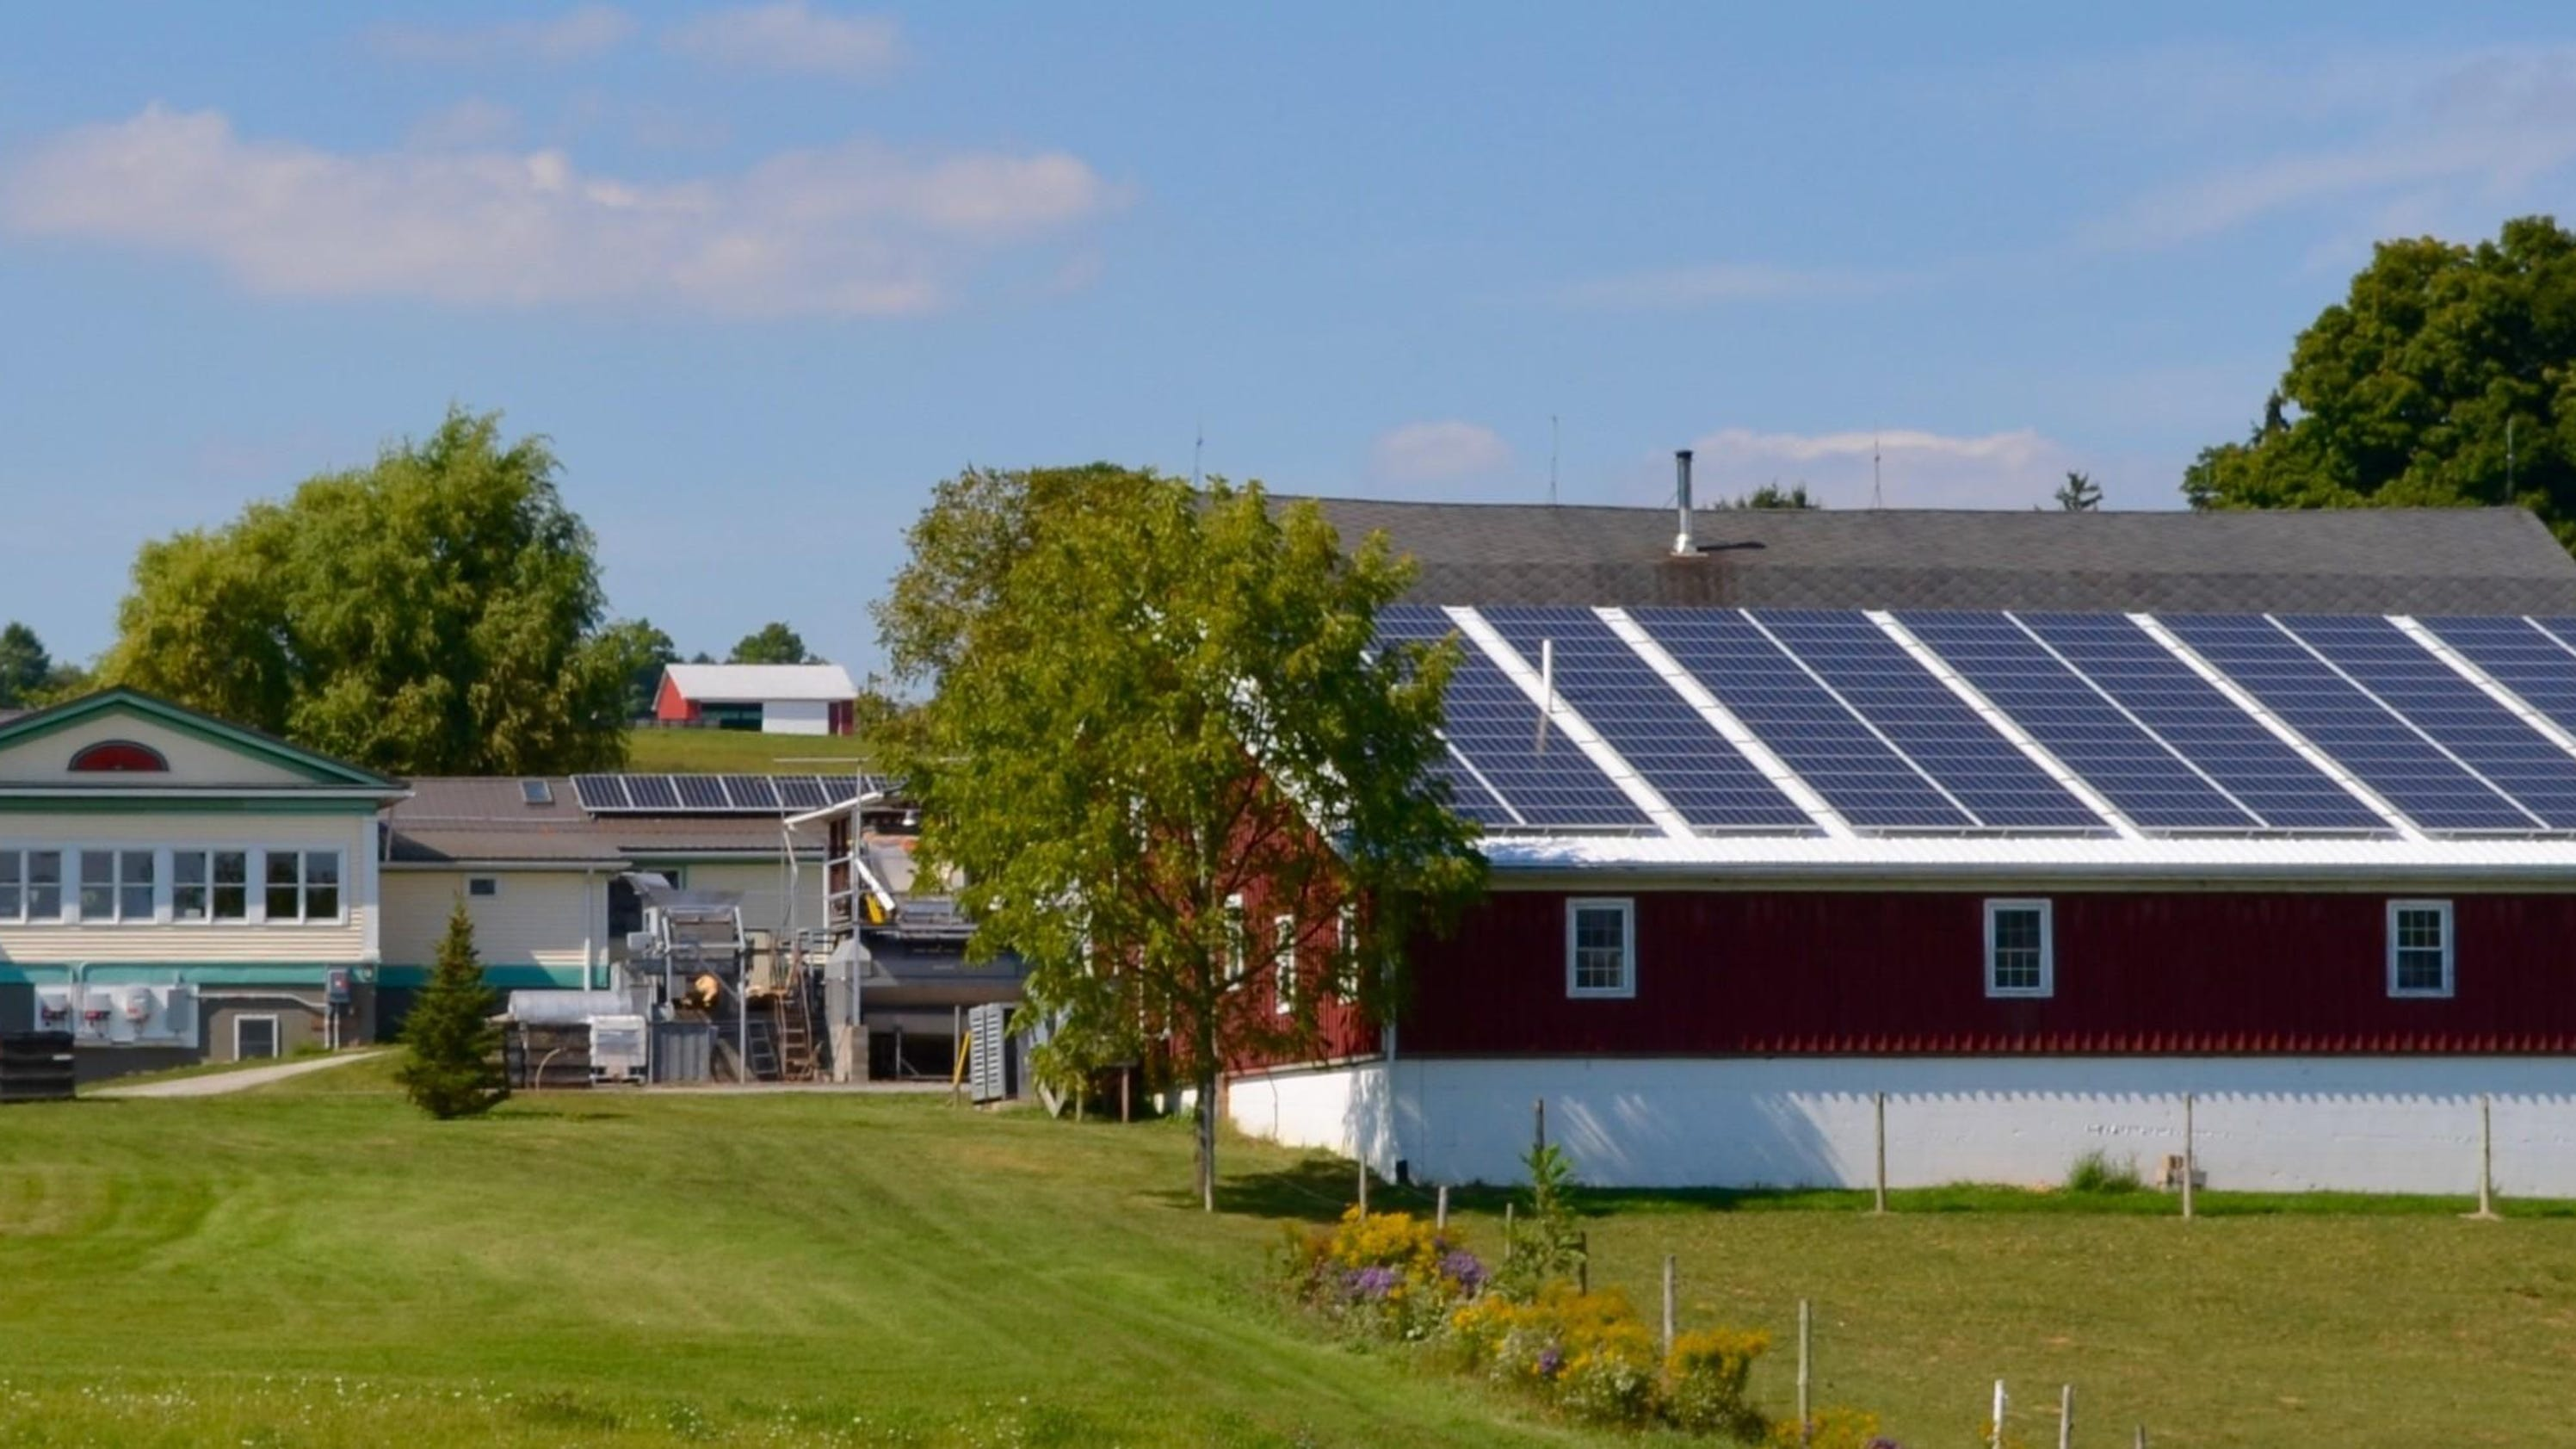 Clean energy means more jobs on the family farm